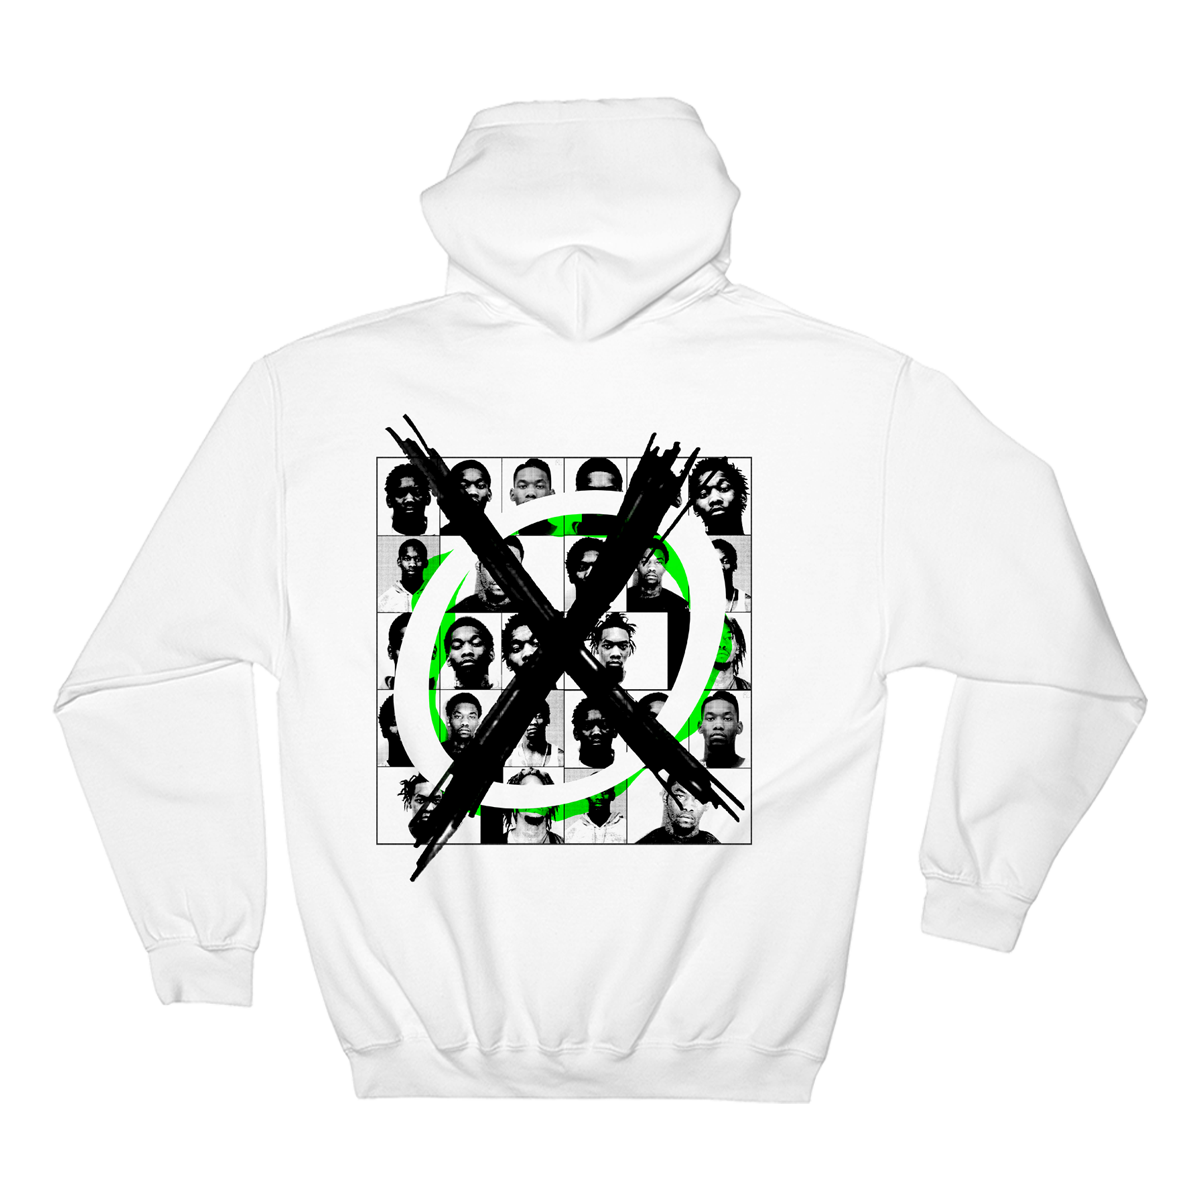 Cross Out Hoodie (White) + Father Of 4 Download